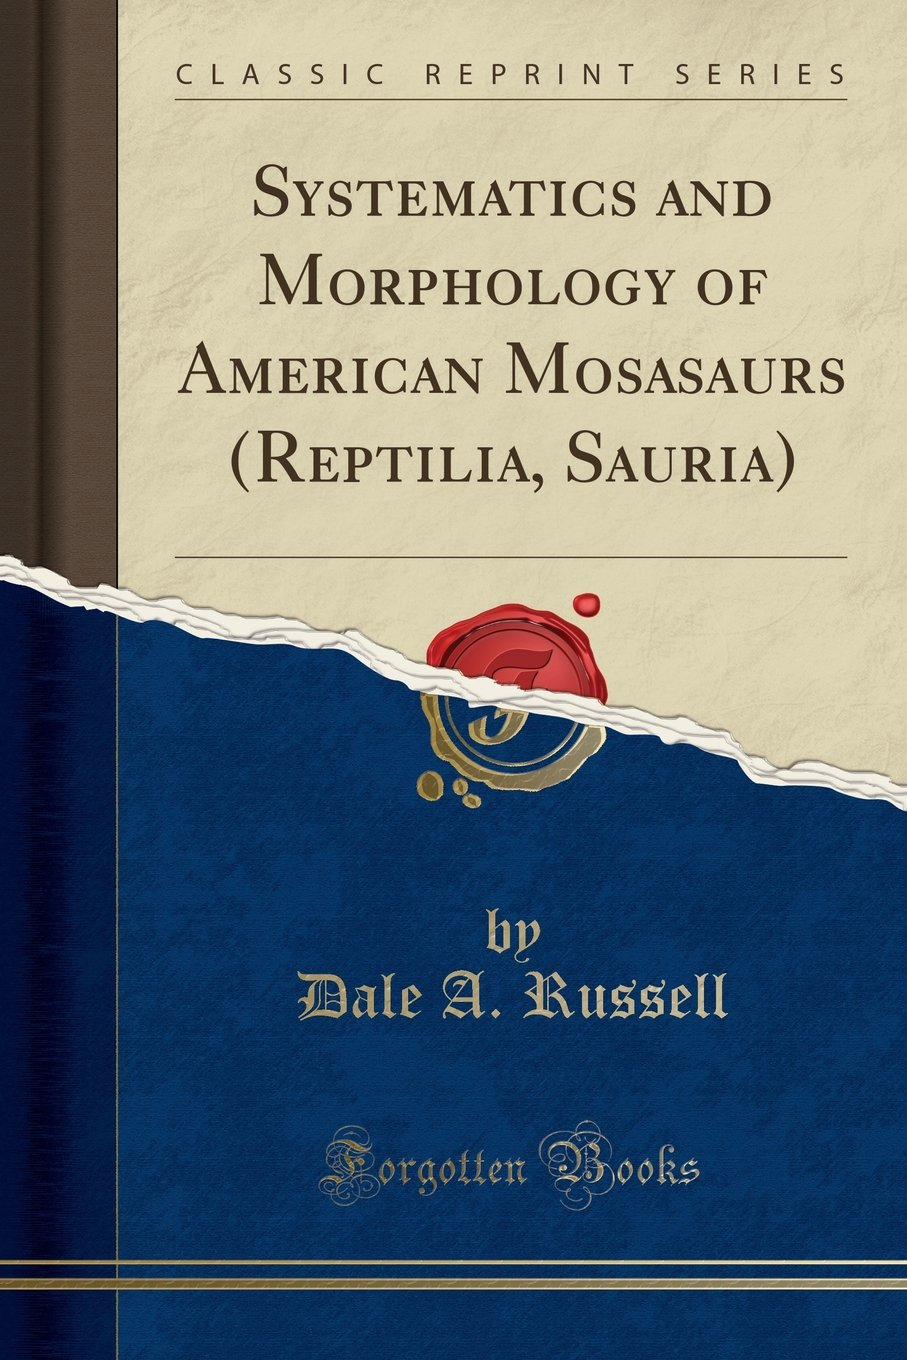 Systematics and Morphology of American Mosasaurs (Reptilia, Sauria) (Classic Reprint) pdf